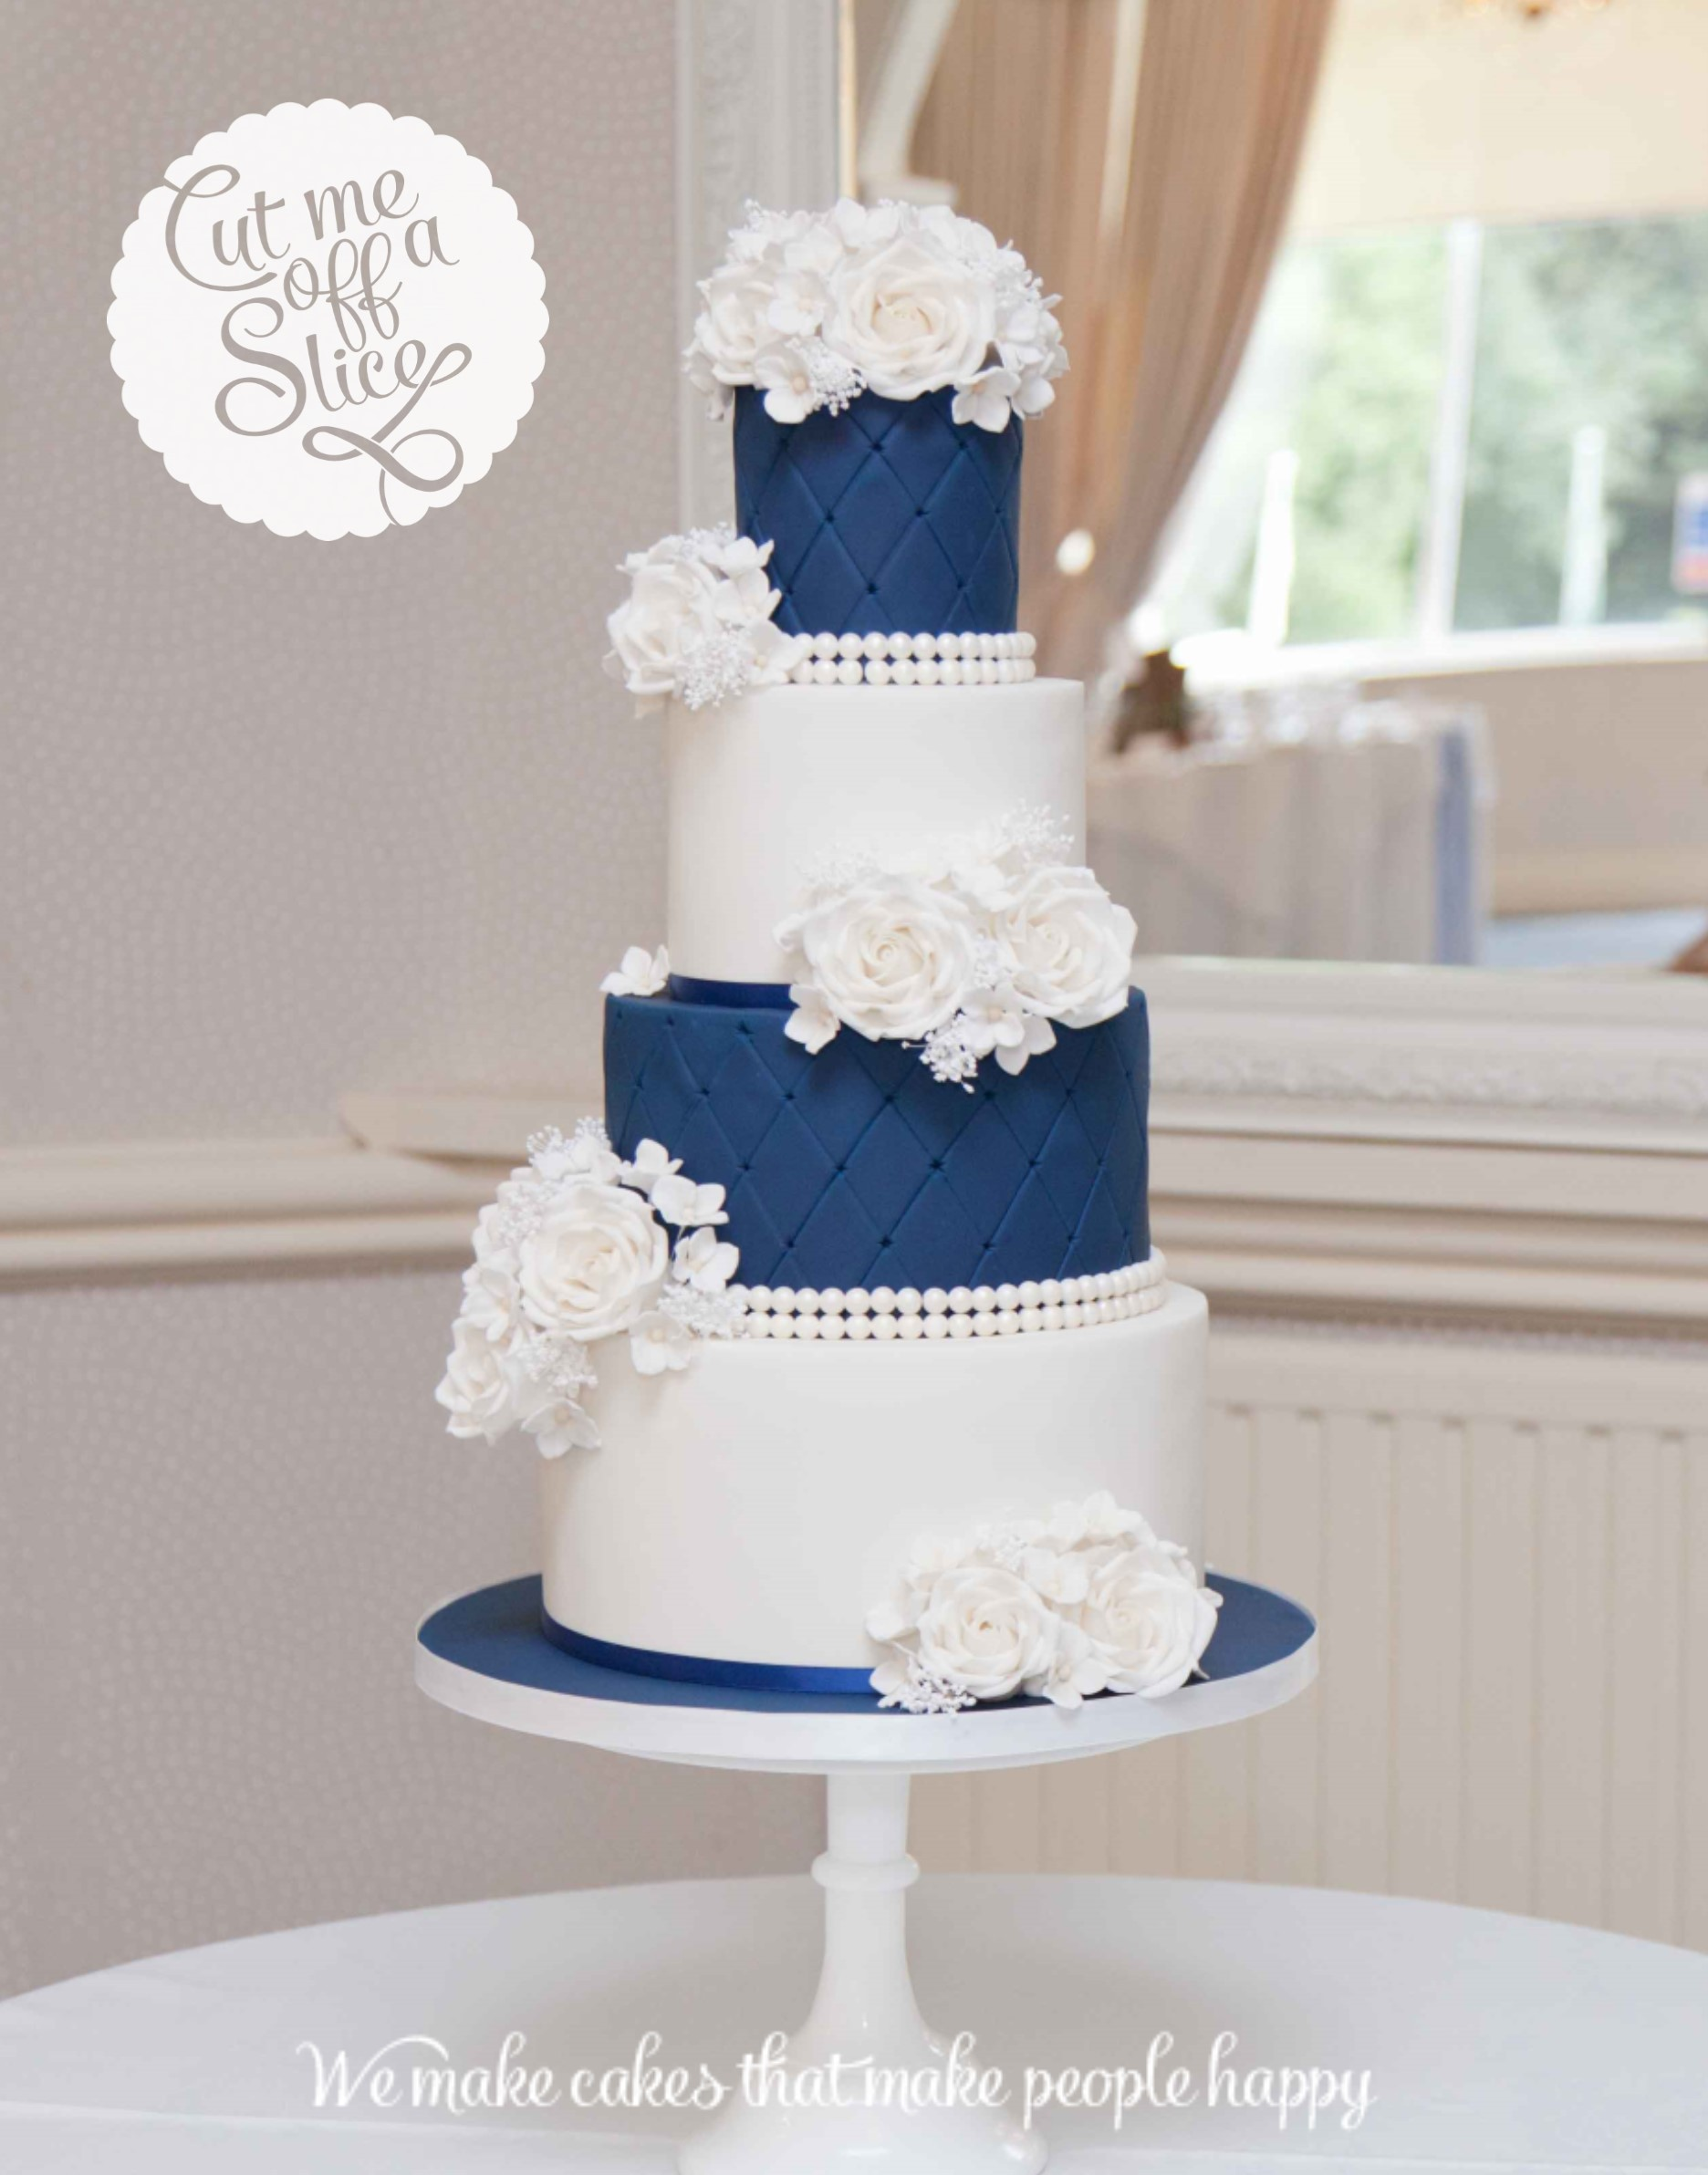 Bespoke wedding cake by Cut Me Off A Slice